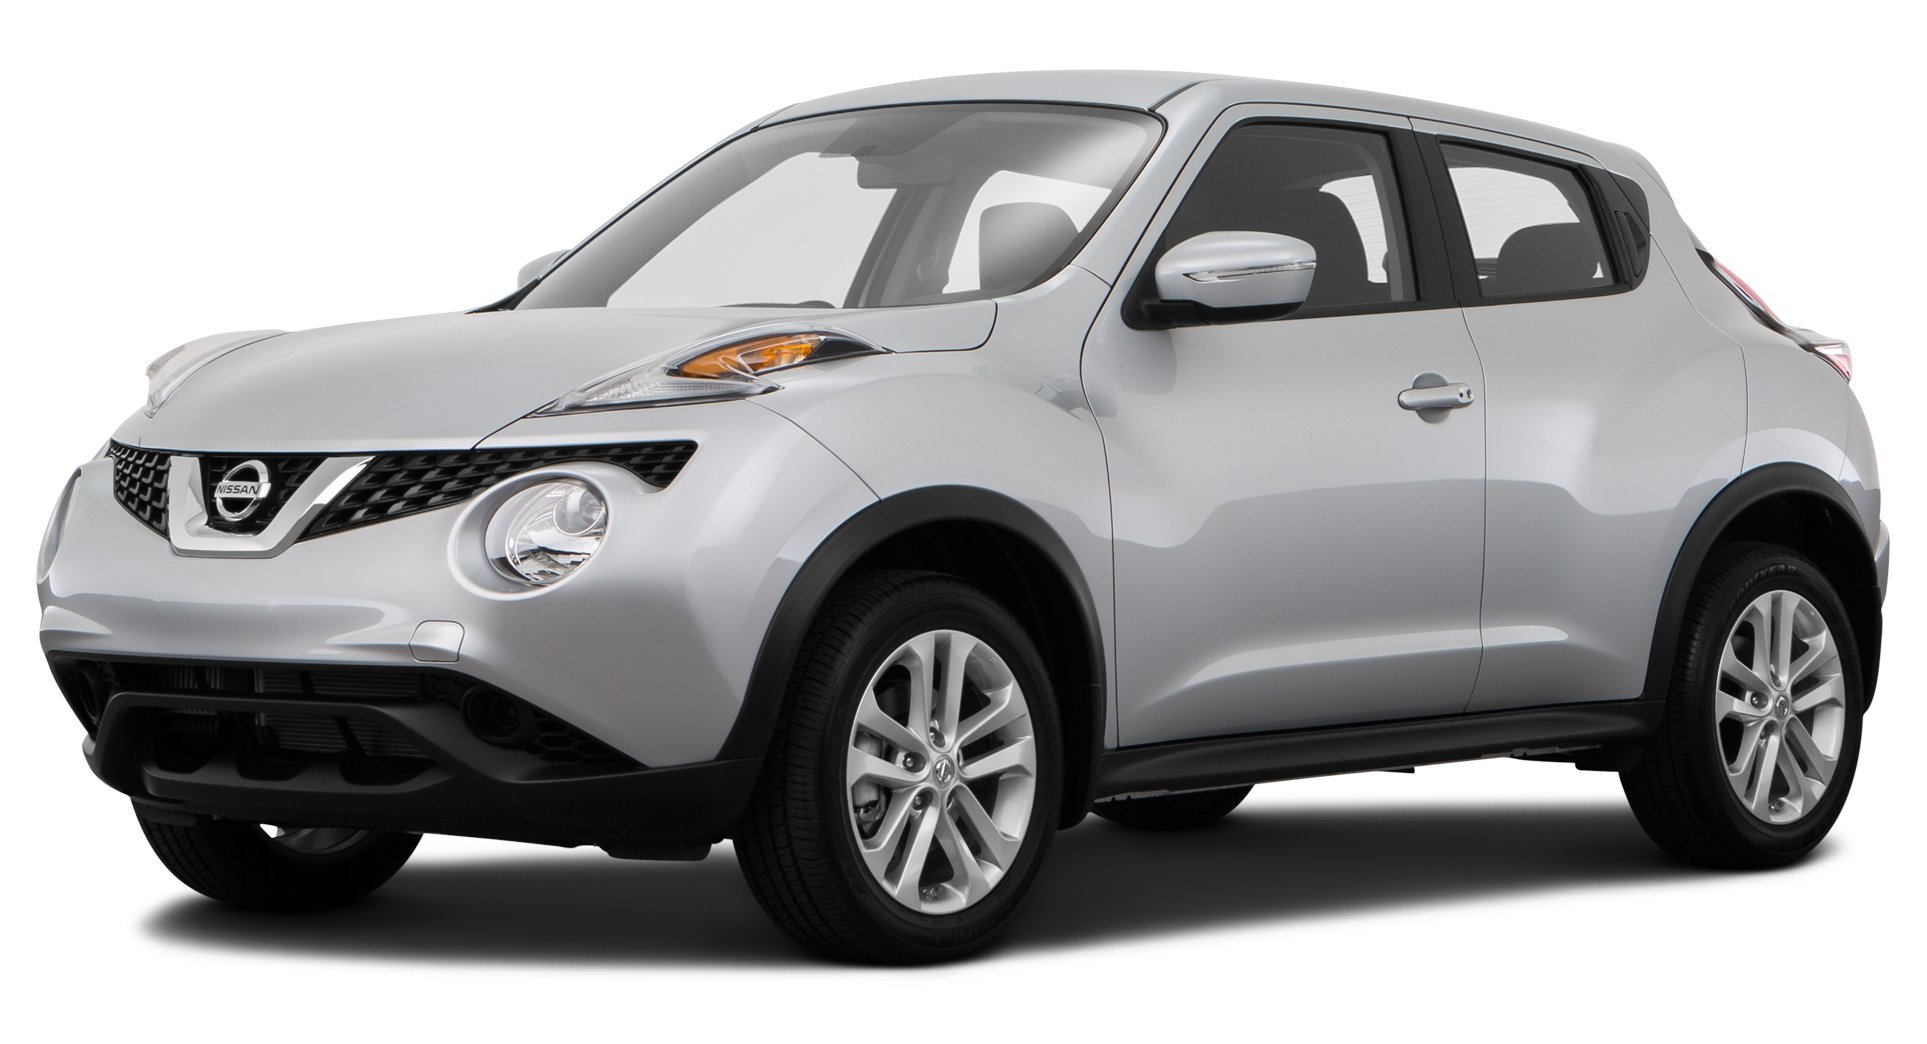 2017 nissan juke reviews images and specs vehicles. Black Bedroom Furniture Sets. Home Design Ideas